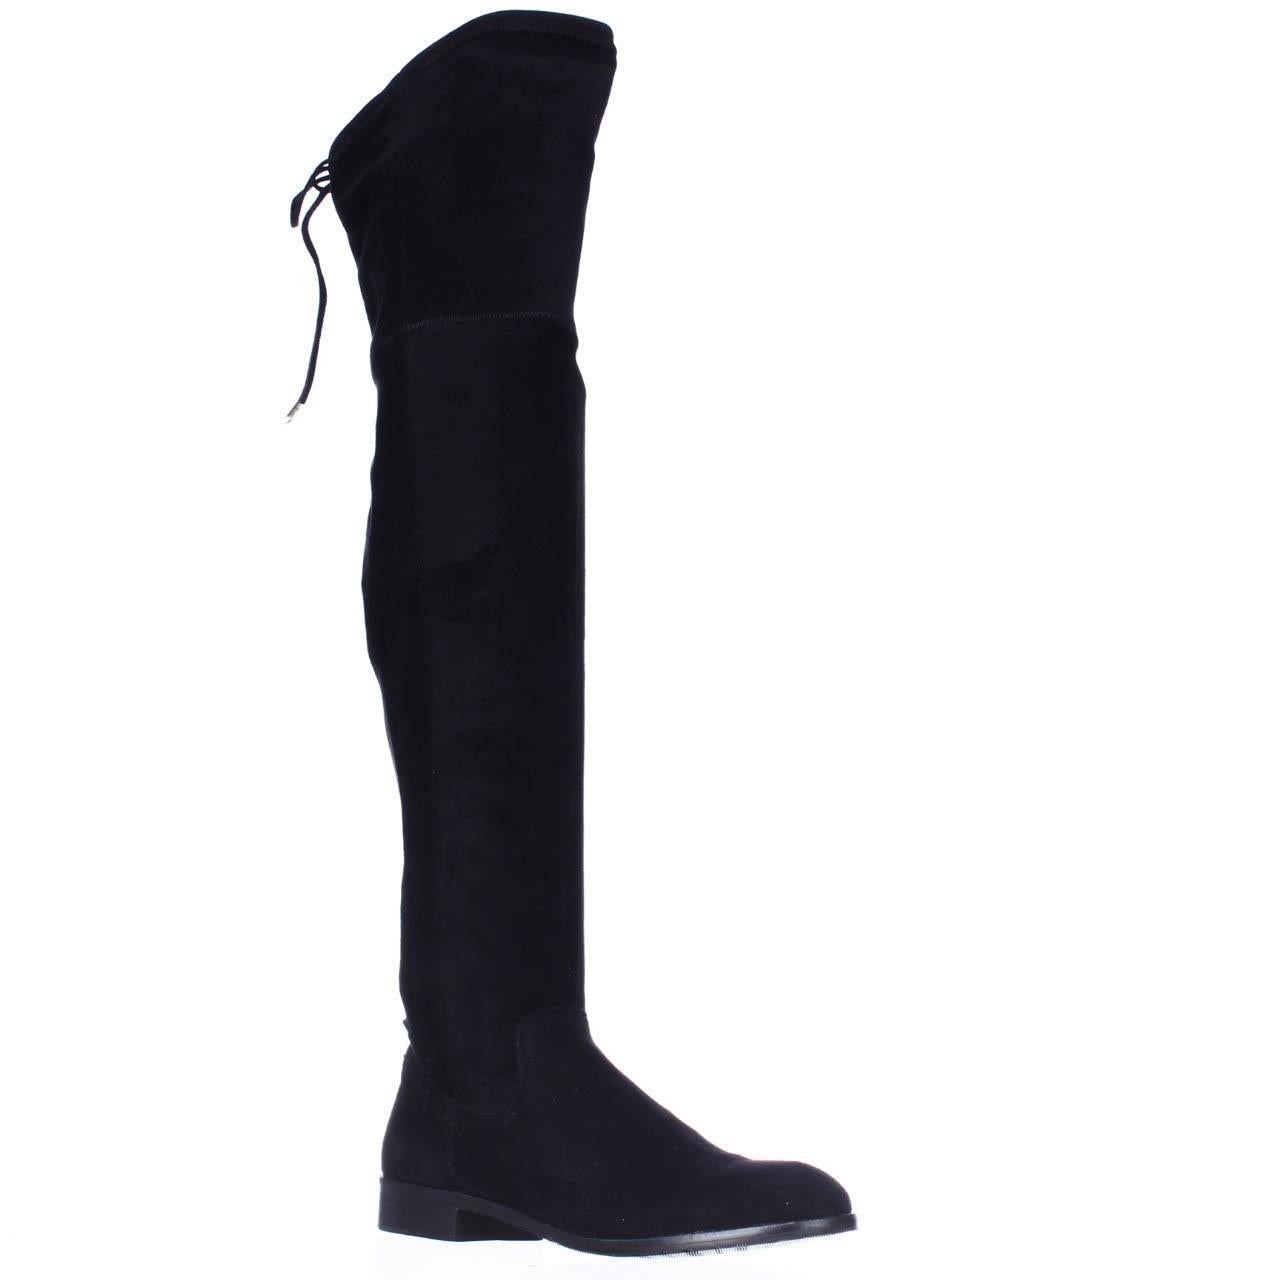 59208cd181e Shop Dolce Vita Neely Over the Knee Boots